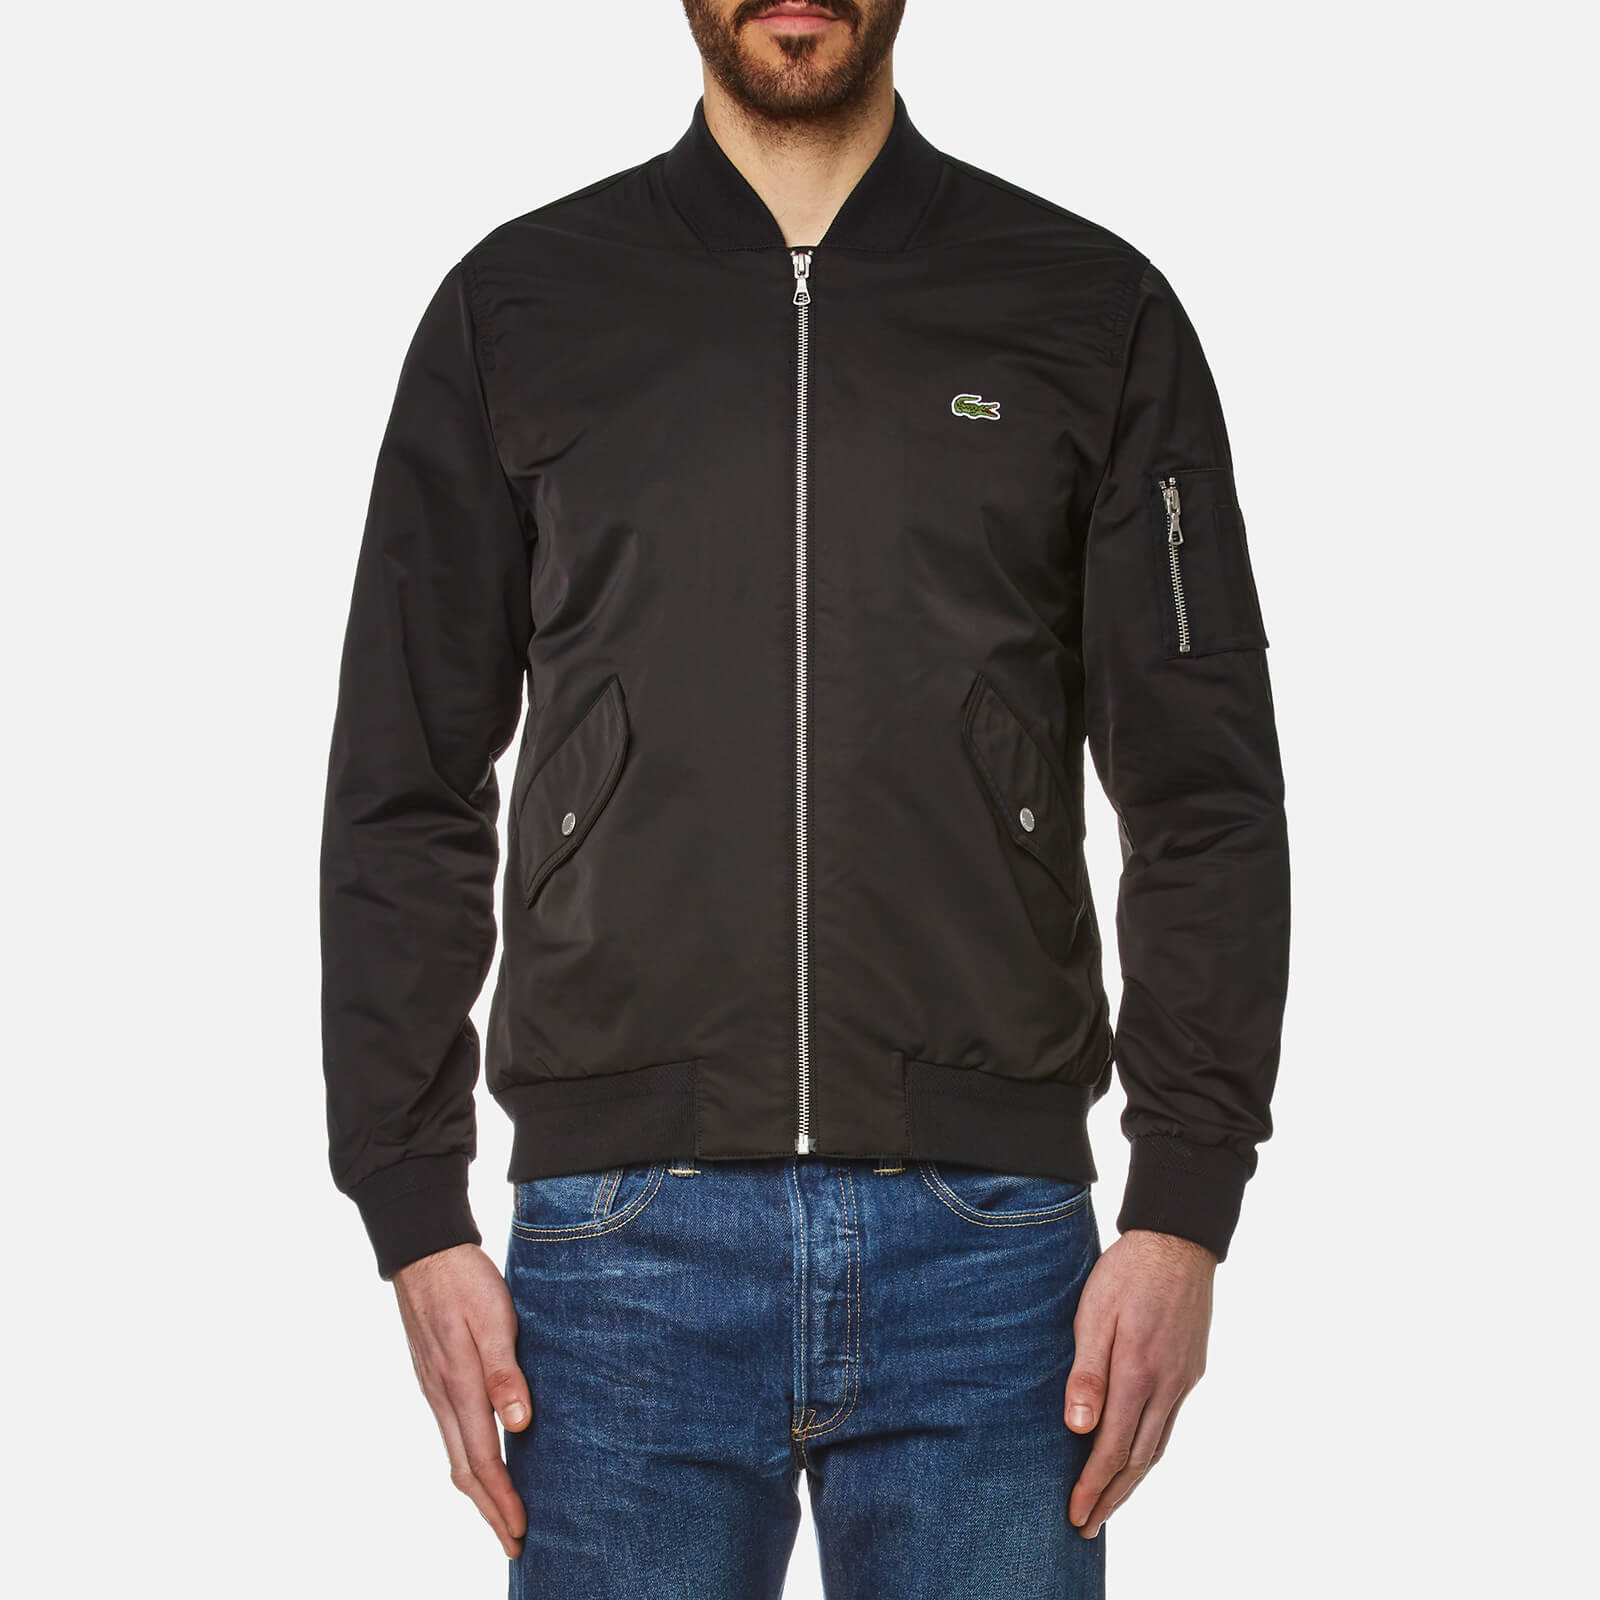 319148dc Lacoste Men's Ma-1 Bomber Jacket - Black